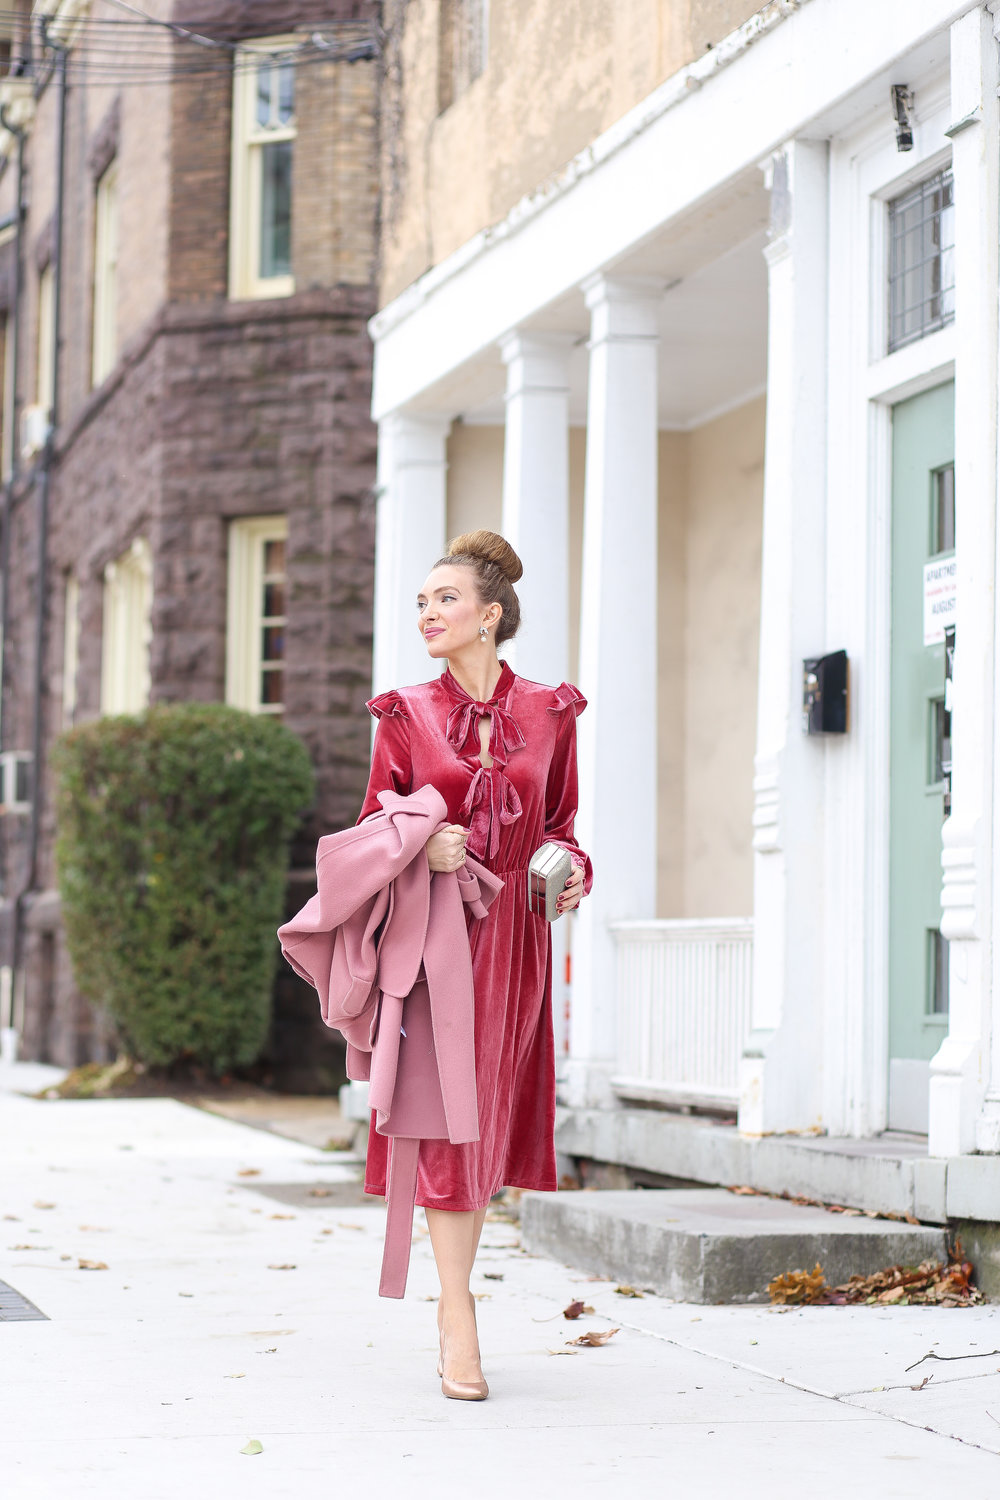 Velvet Bow Dress c/o || Dusty Rose Coat || Similar Rose Gold Shoes || Similar Gold Clutch || Jackie Kennedy Earrings || Jackie Kennedy Cascade Ring || Stella And Dot Ring ||